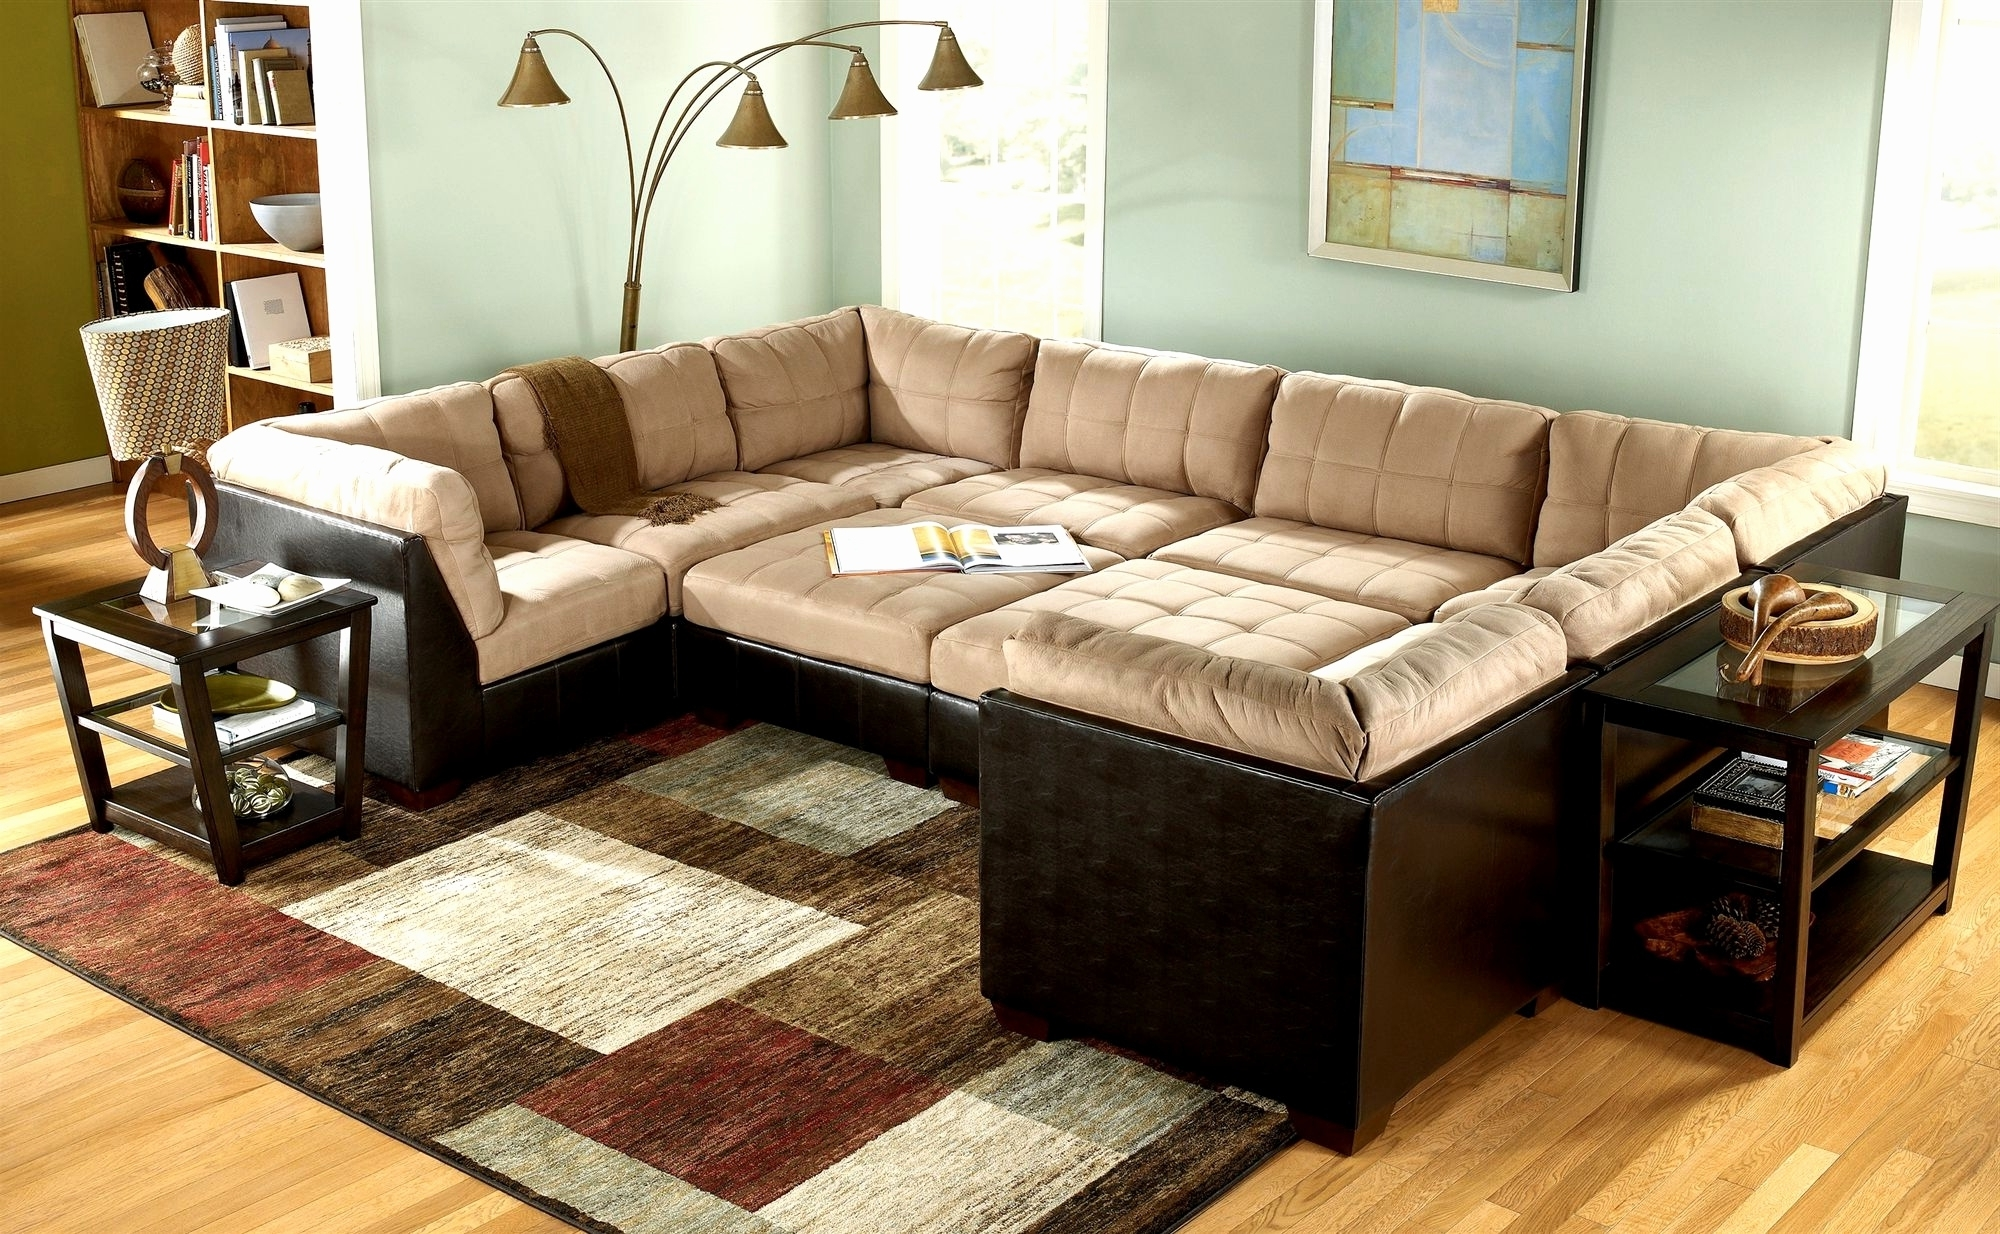 Widely Used Unique Sectional Sofas For Furniture : Extra Wide Sofa Awesome Deep Seated Sofa Sectional (View 15 of 15)